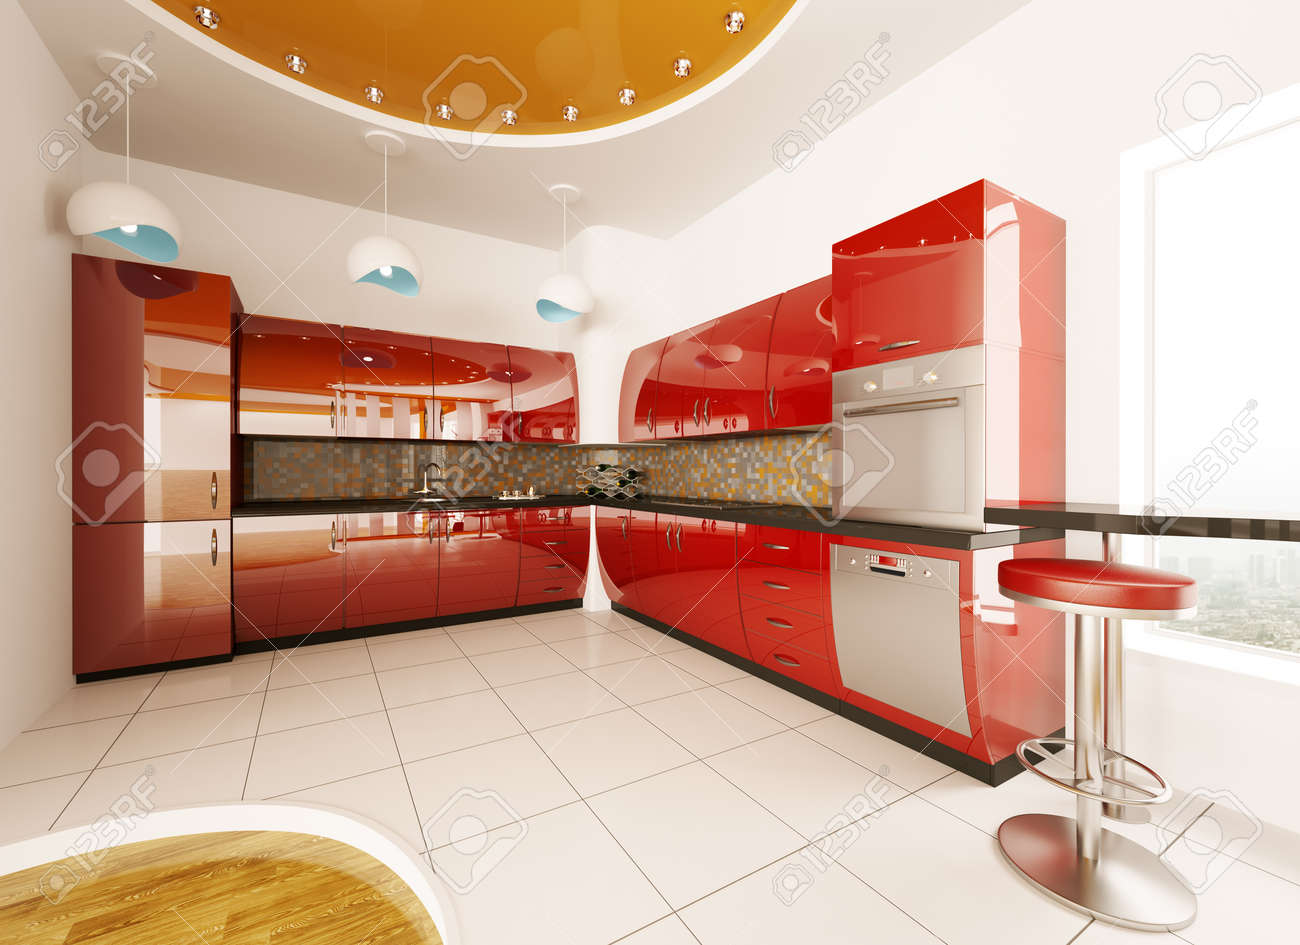 Red Kitchen Floor Interior Design Of Modern Red Kitchen 3d Render Stock Photo